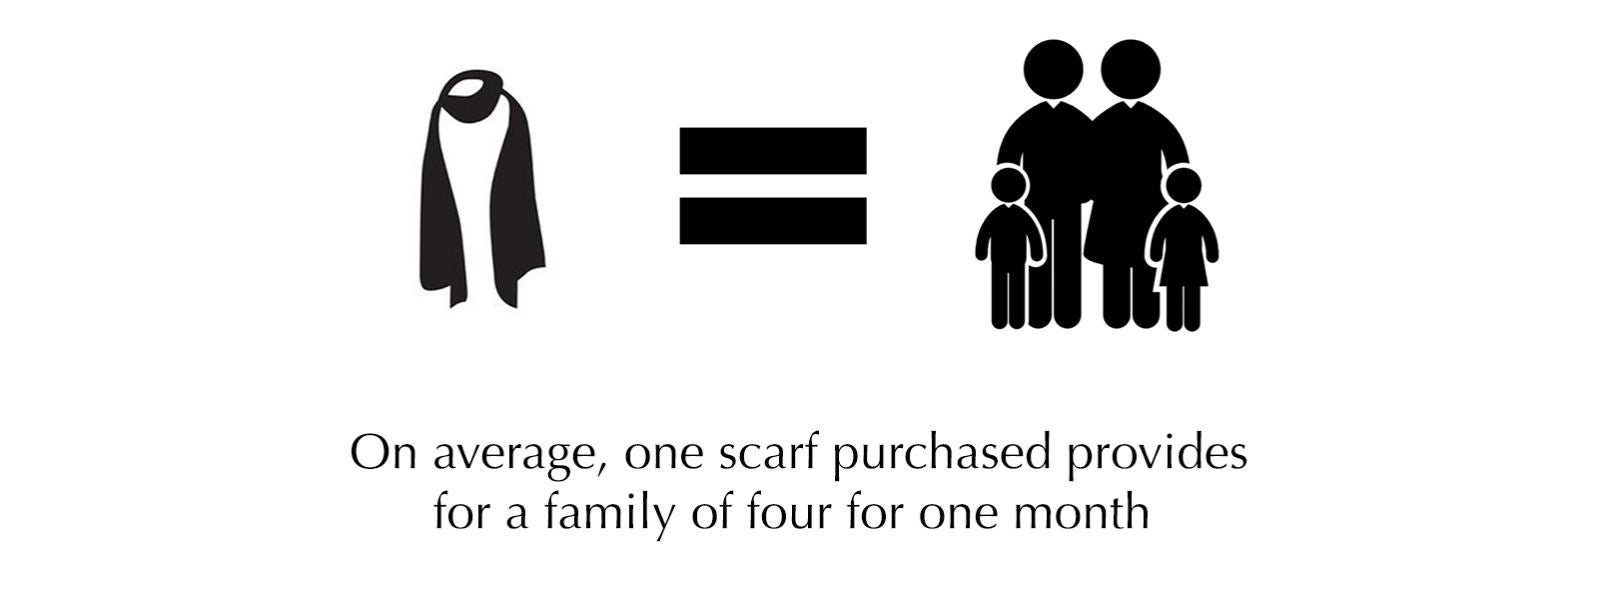 On average, the purchase of one Norlha scarf provides for a family of four for one month.